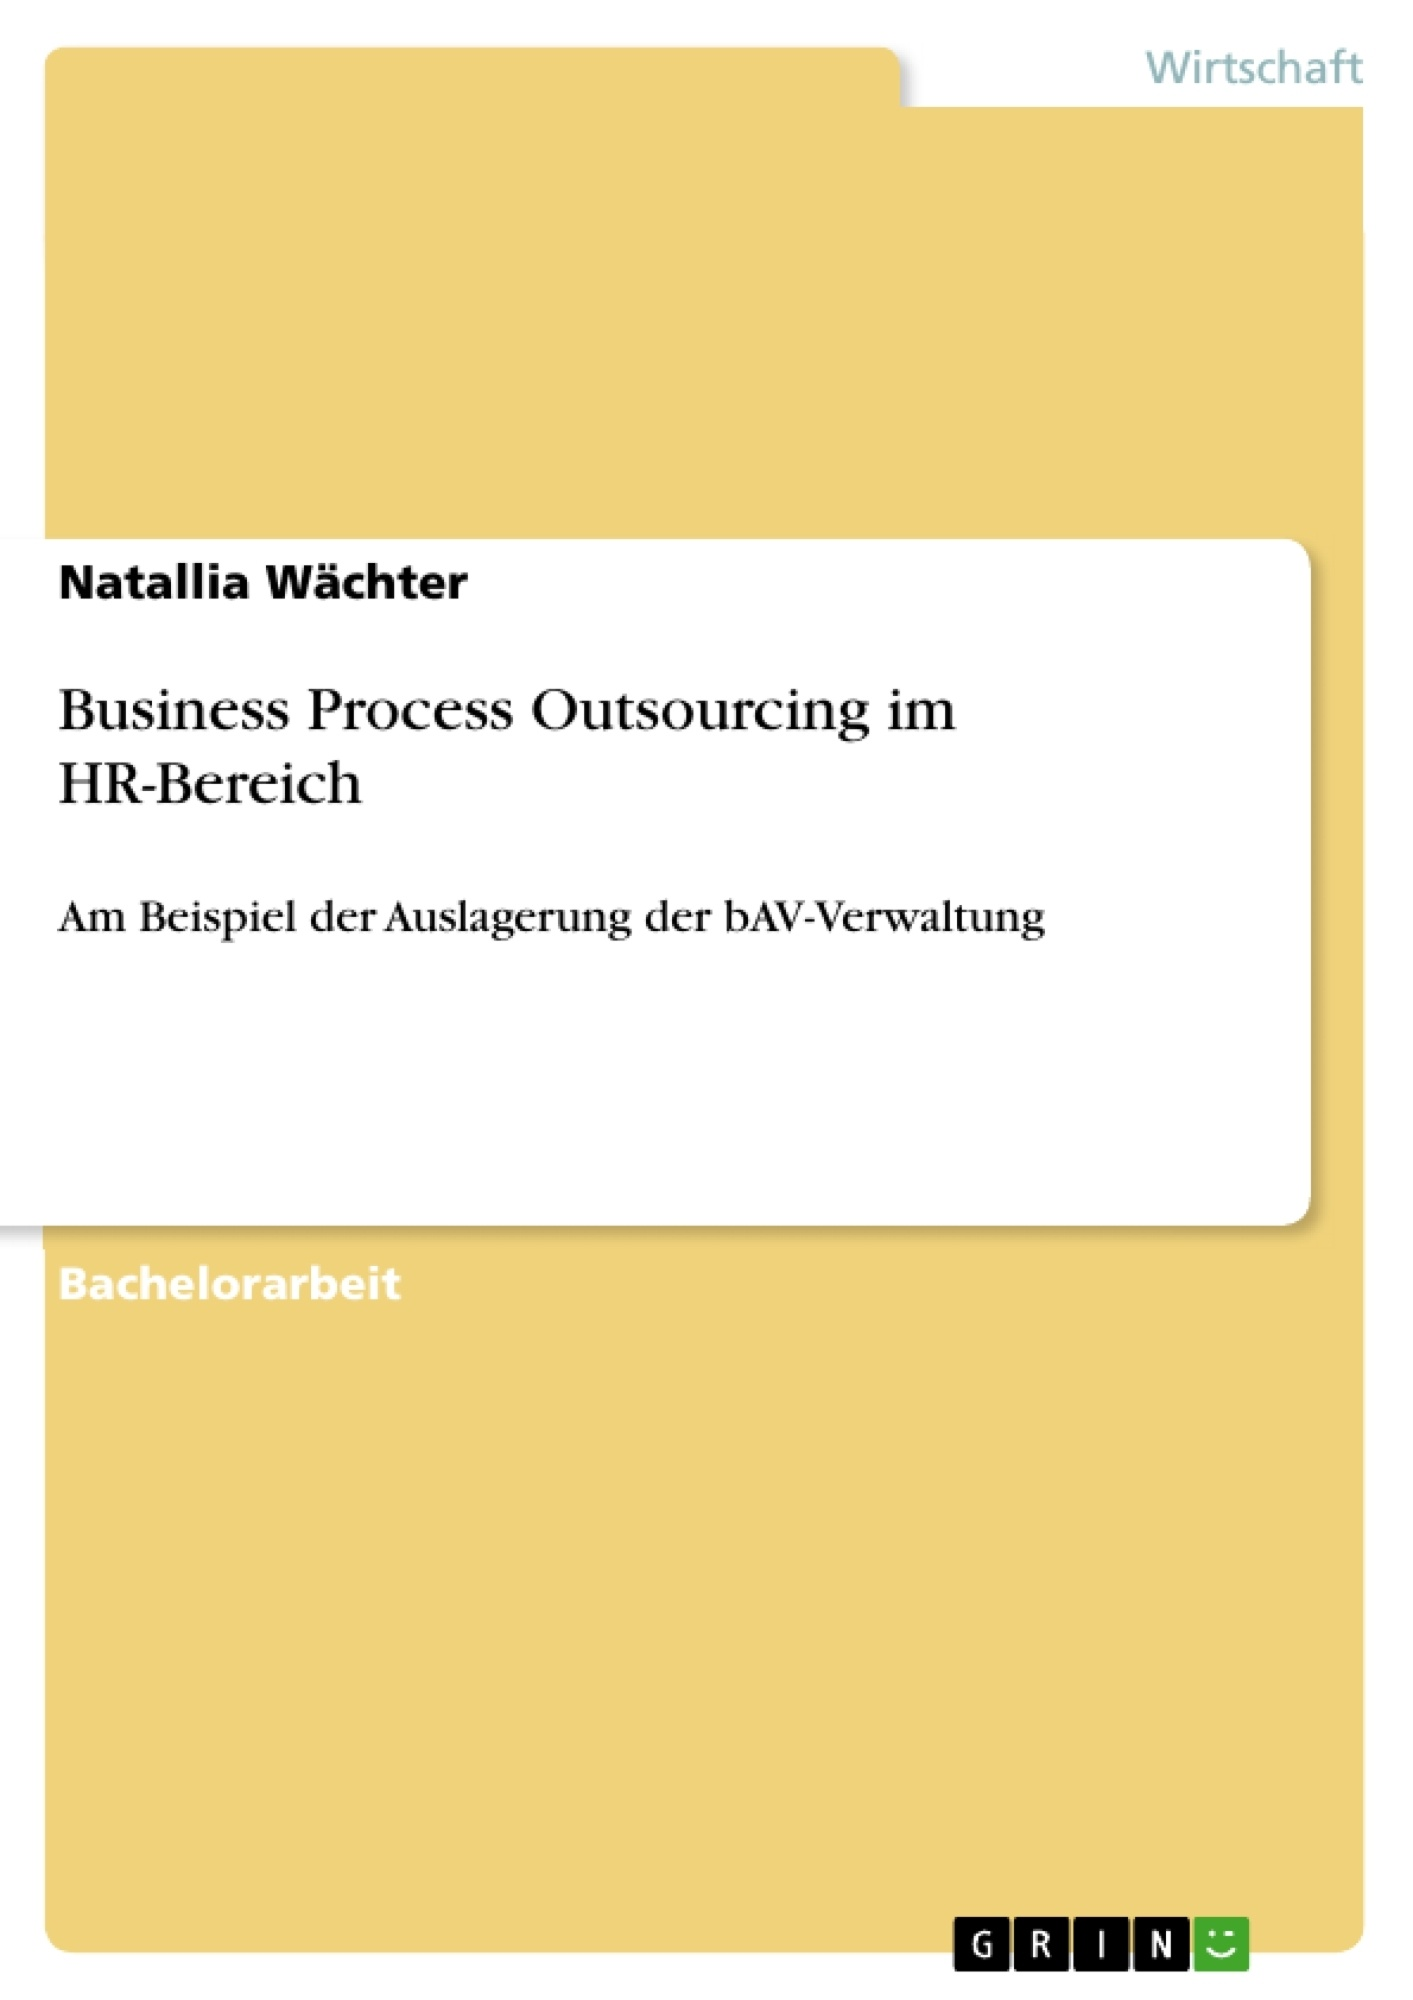 Titel: Business Process Outsourcing im HR-Bereich